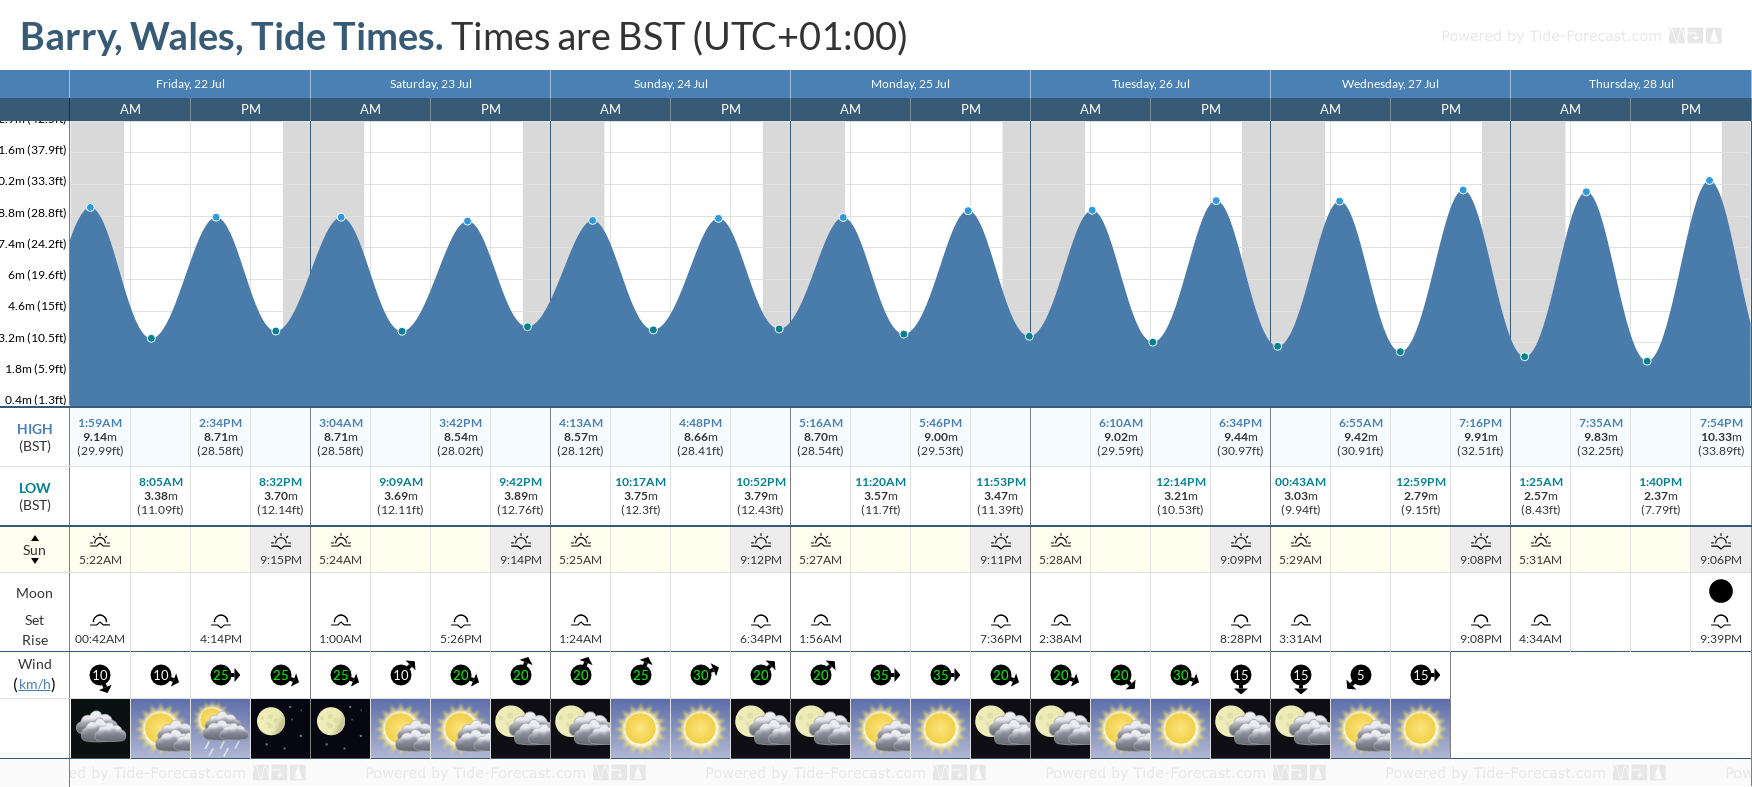 Barry, Wales Tide Chart including high and low tide tide times for the next 7 days